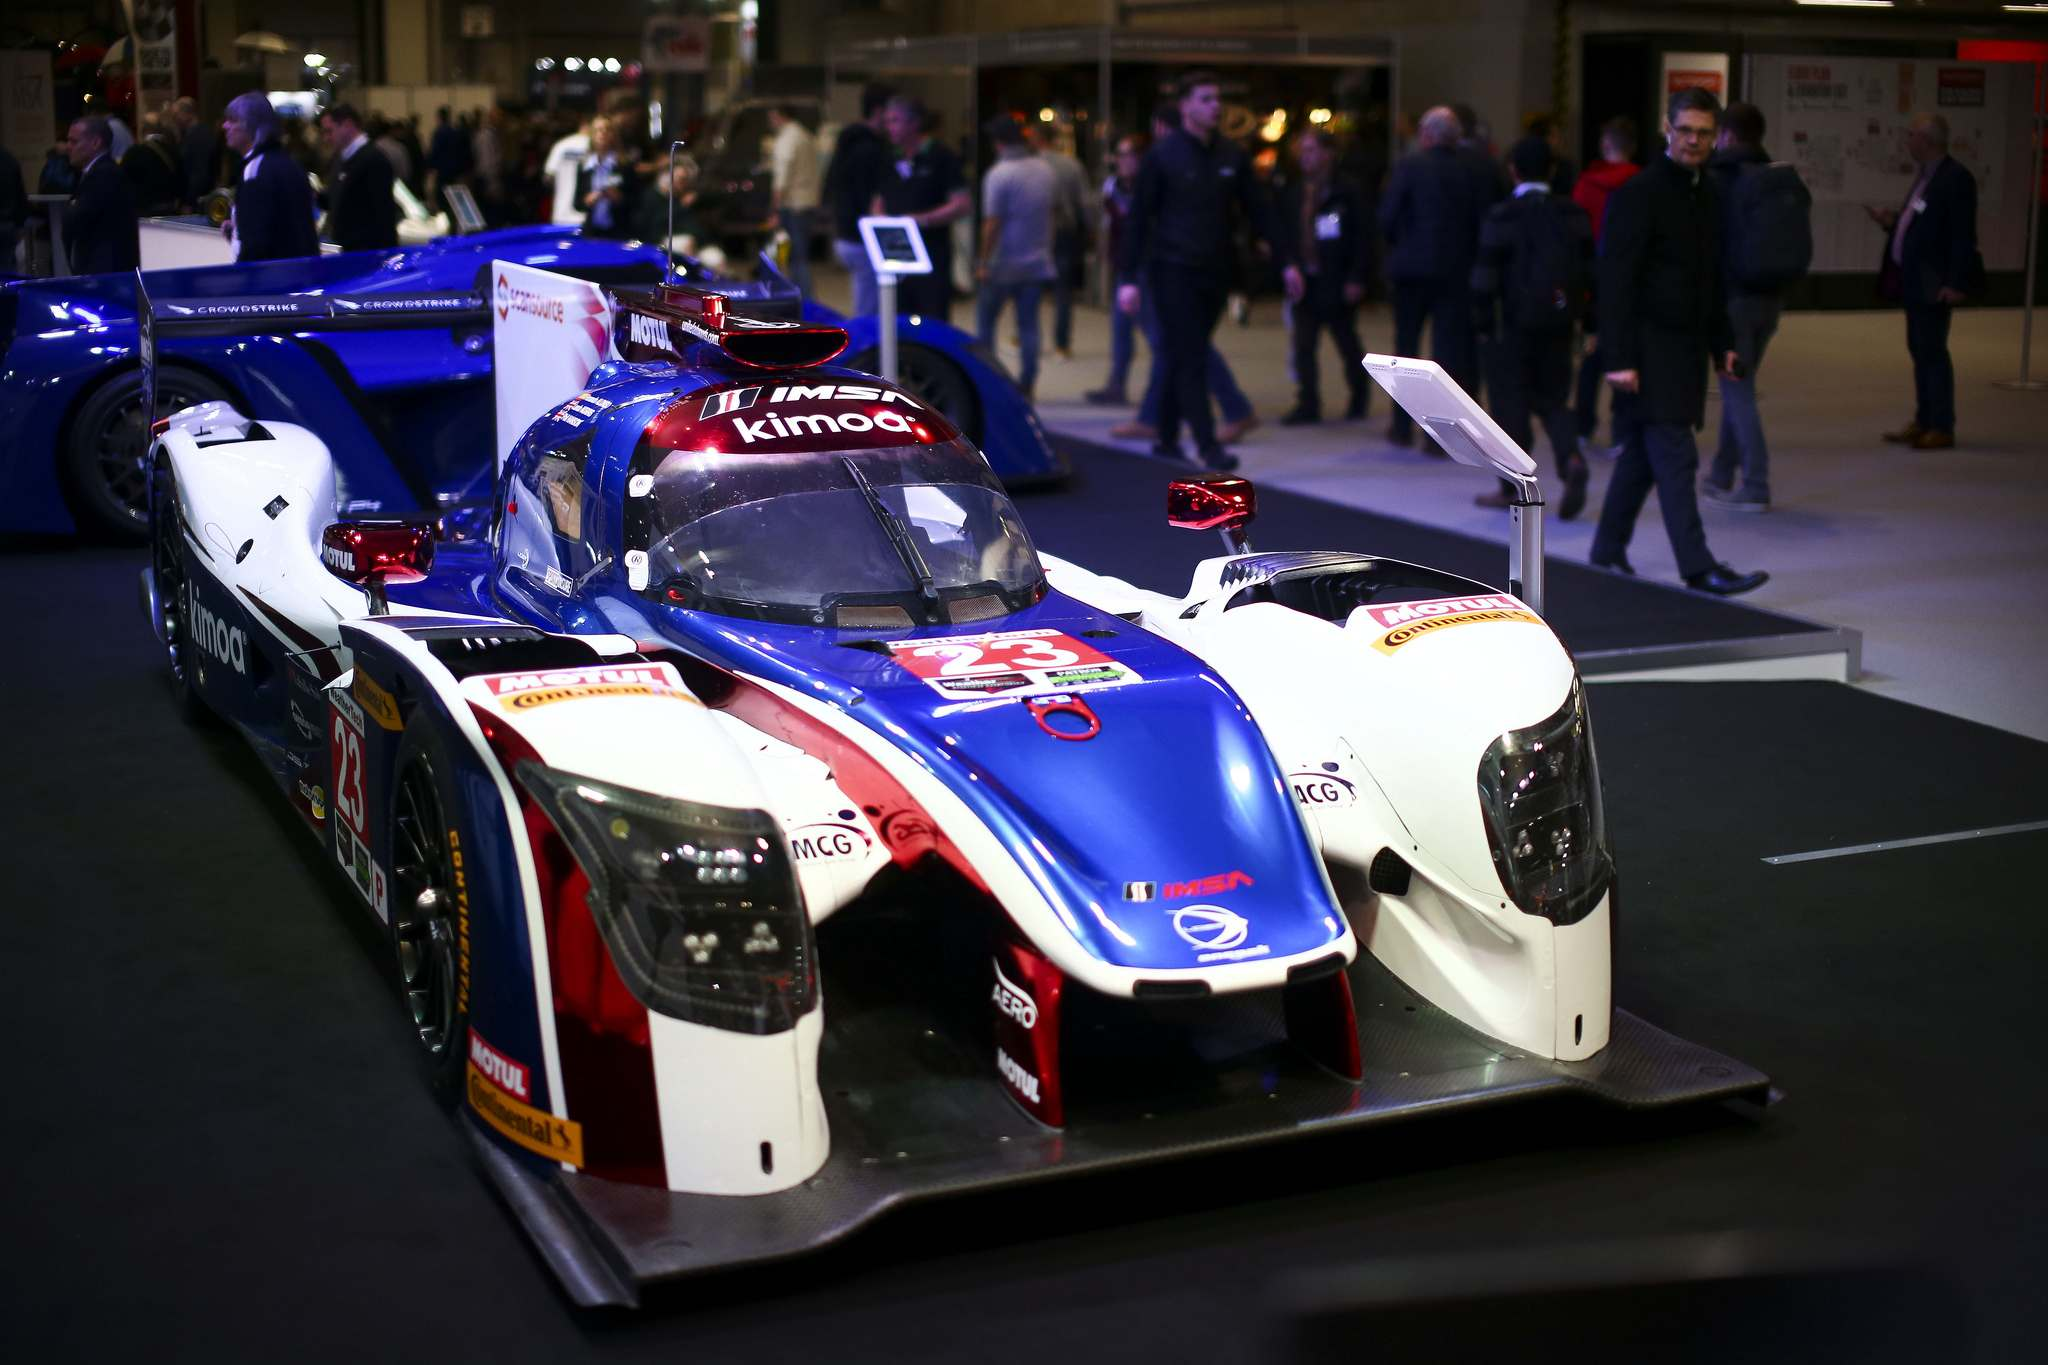 ligier 2018 Ligier at Autosport International Show 2018